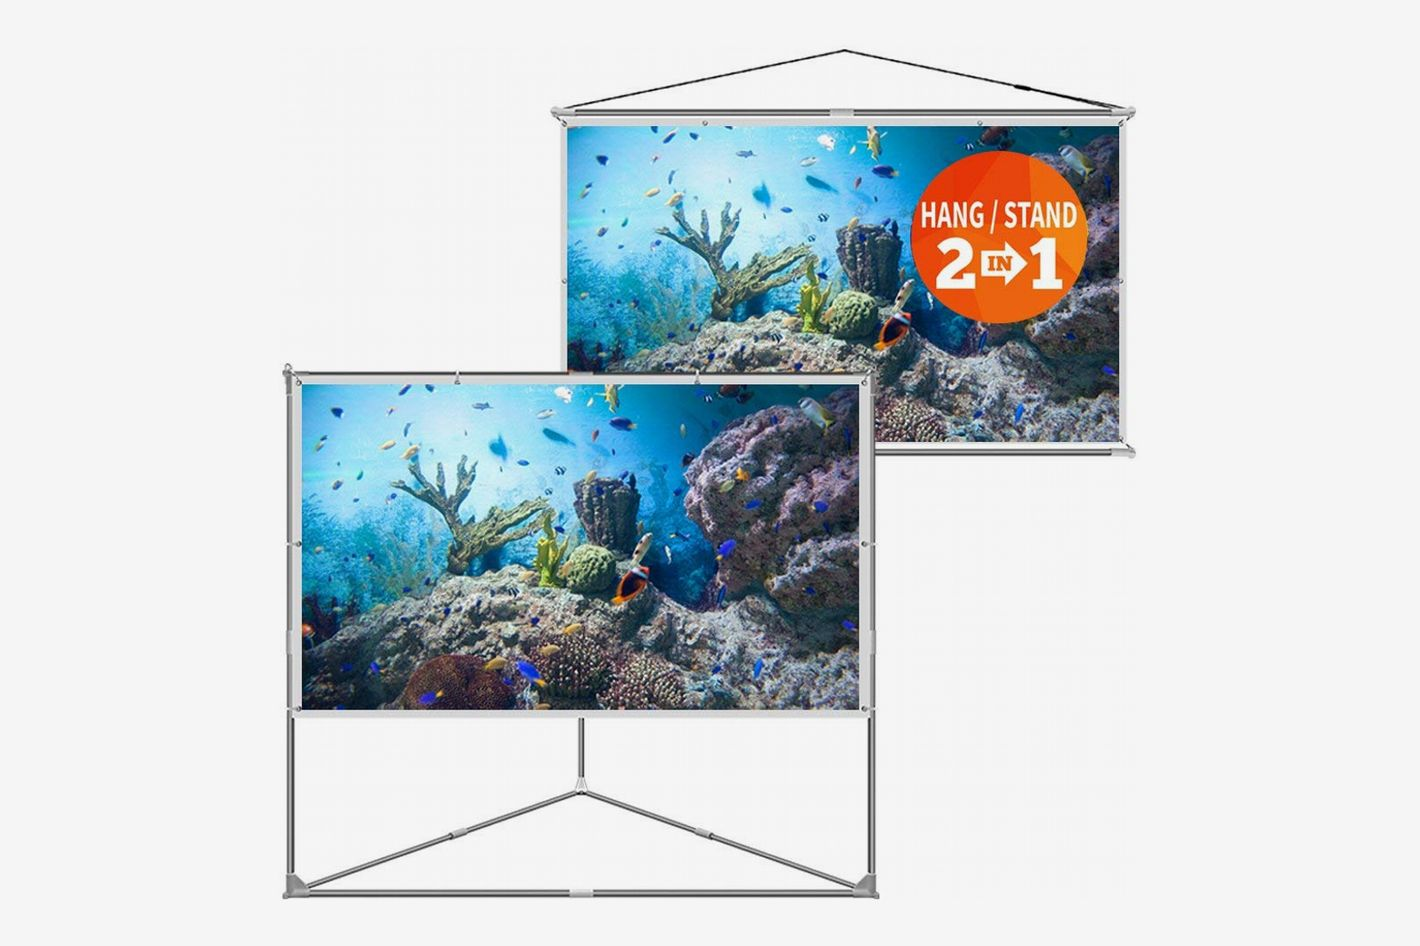 JaeilPLM 100-Inch 2-in-1 Portable Projector Screen